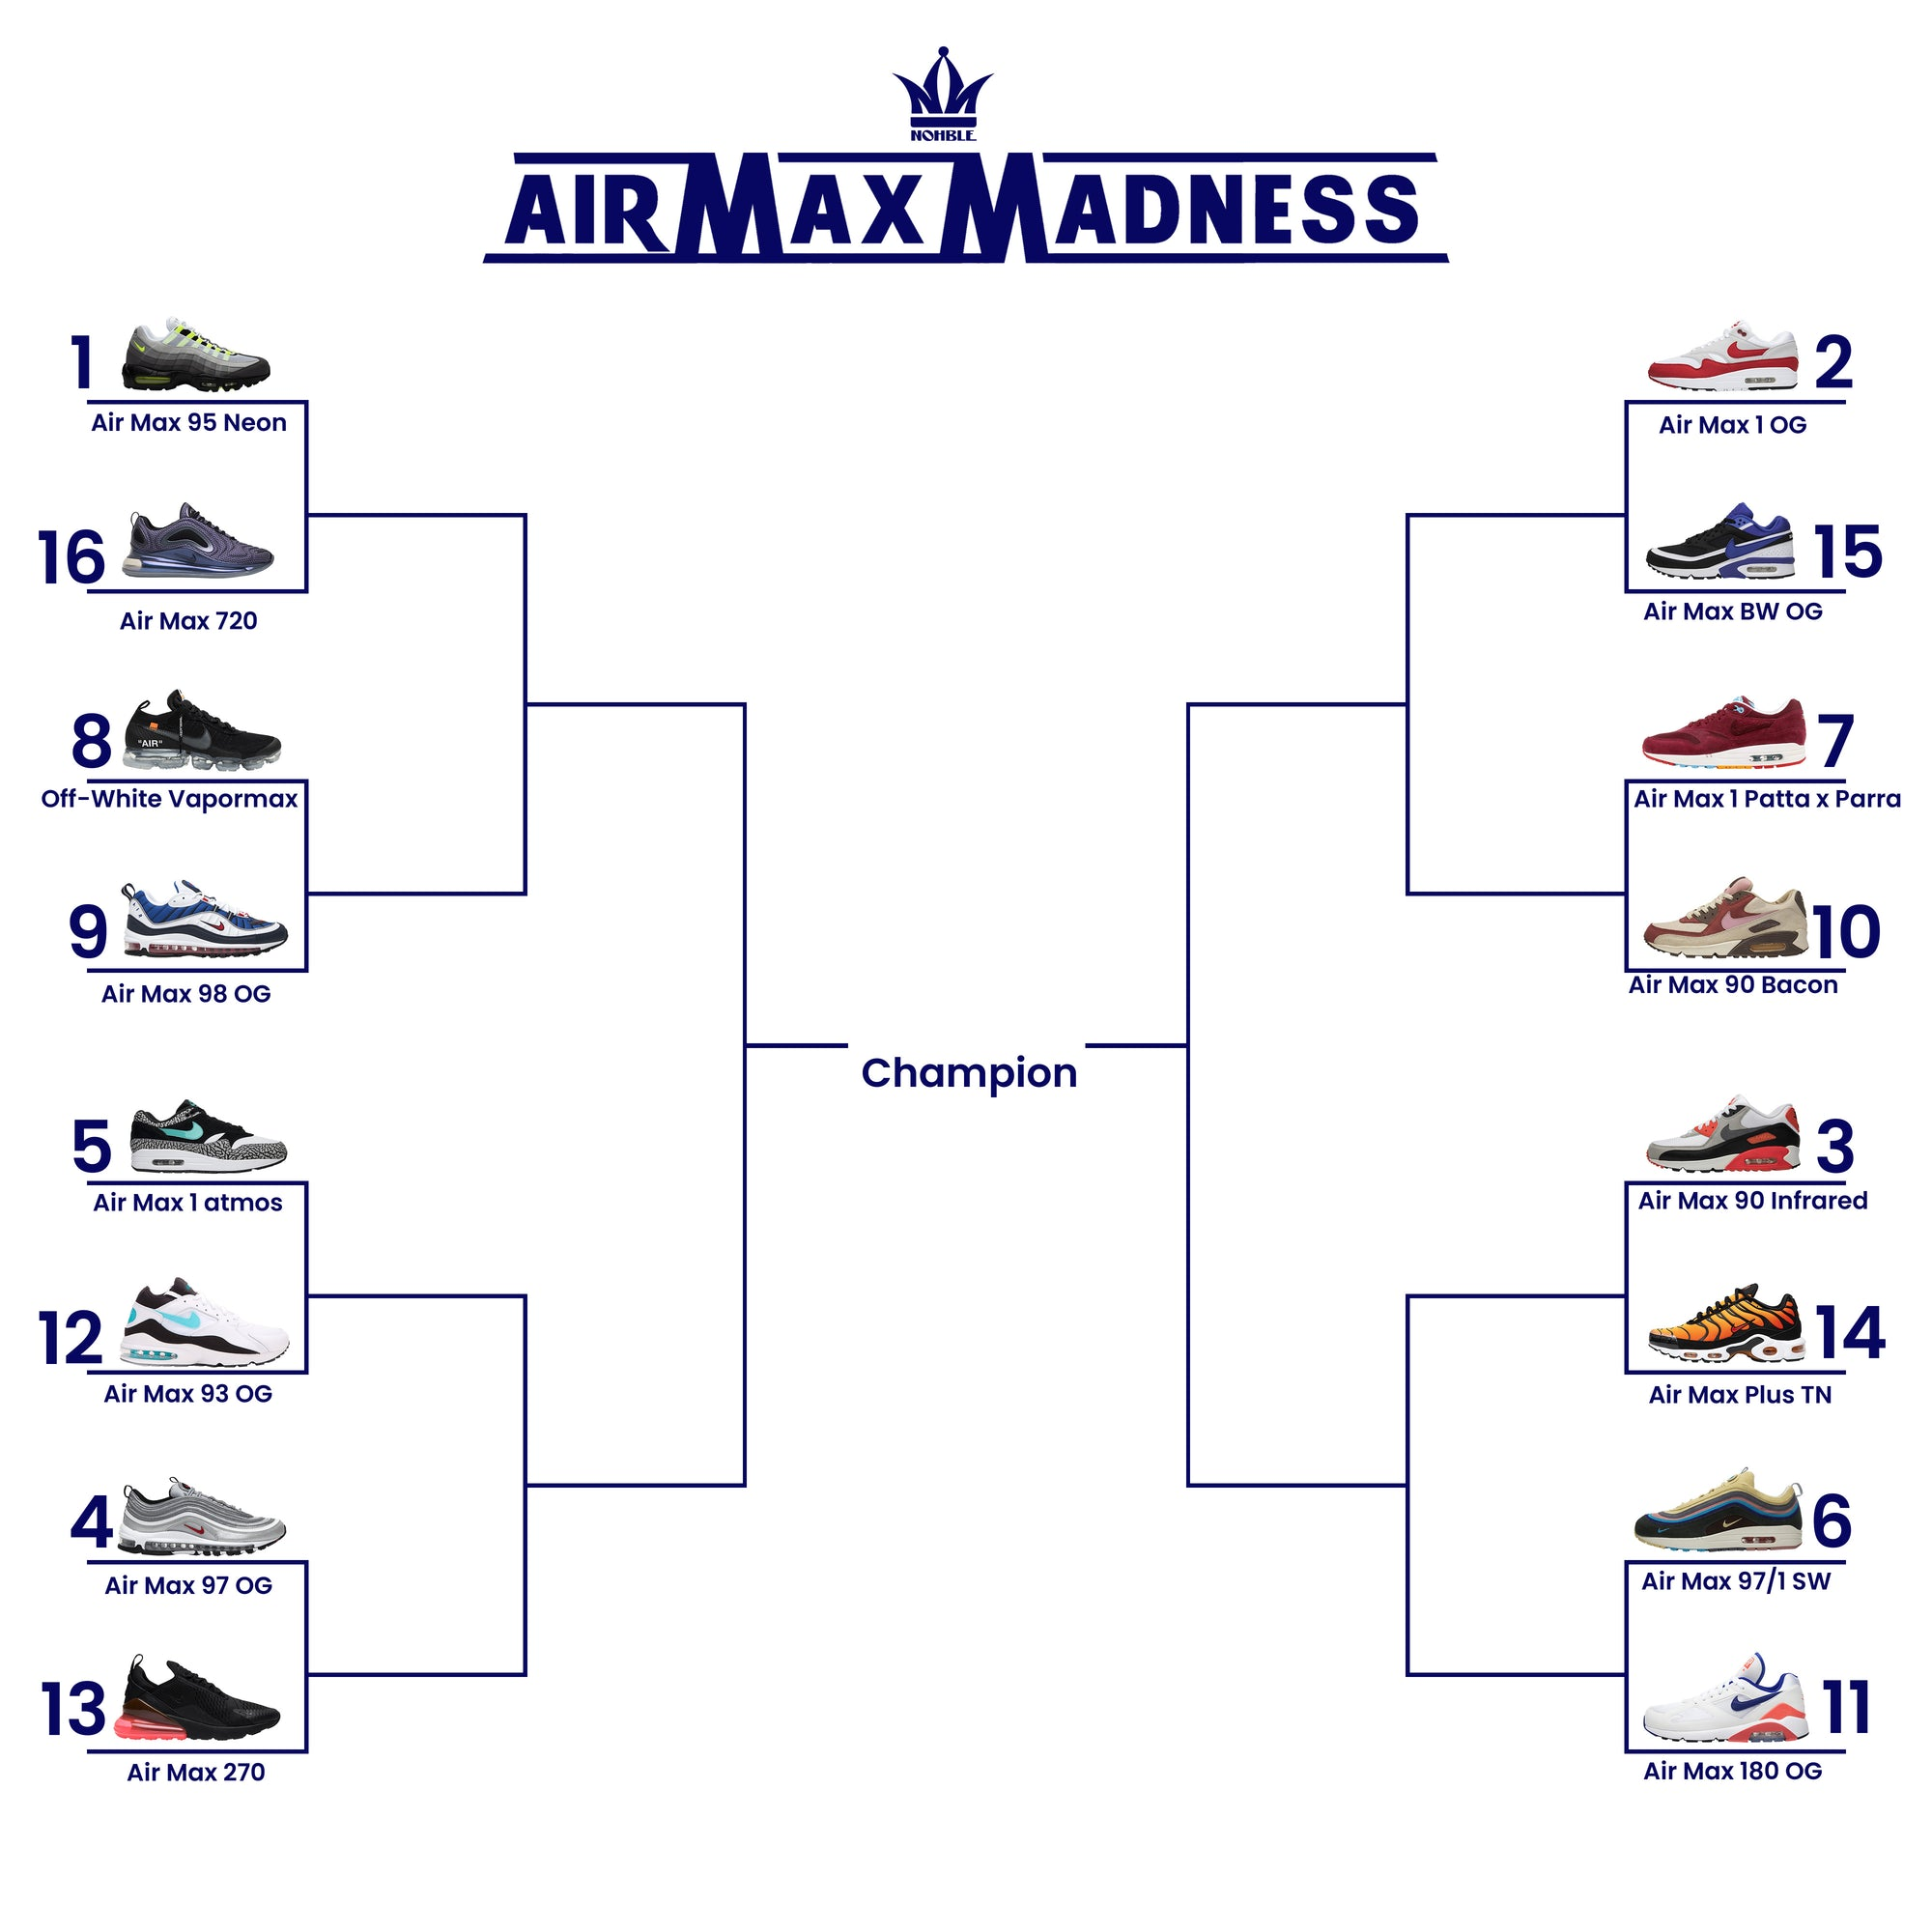 Announcing The Air Max Madness Tournament!